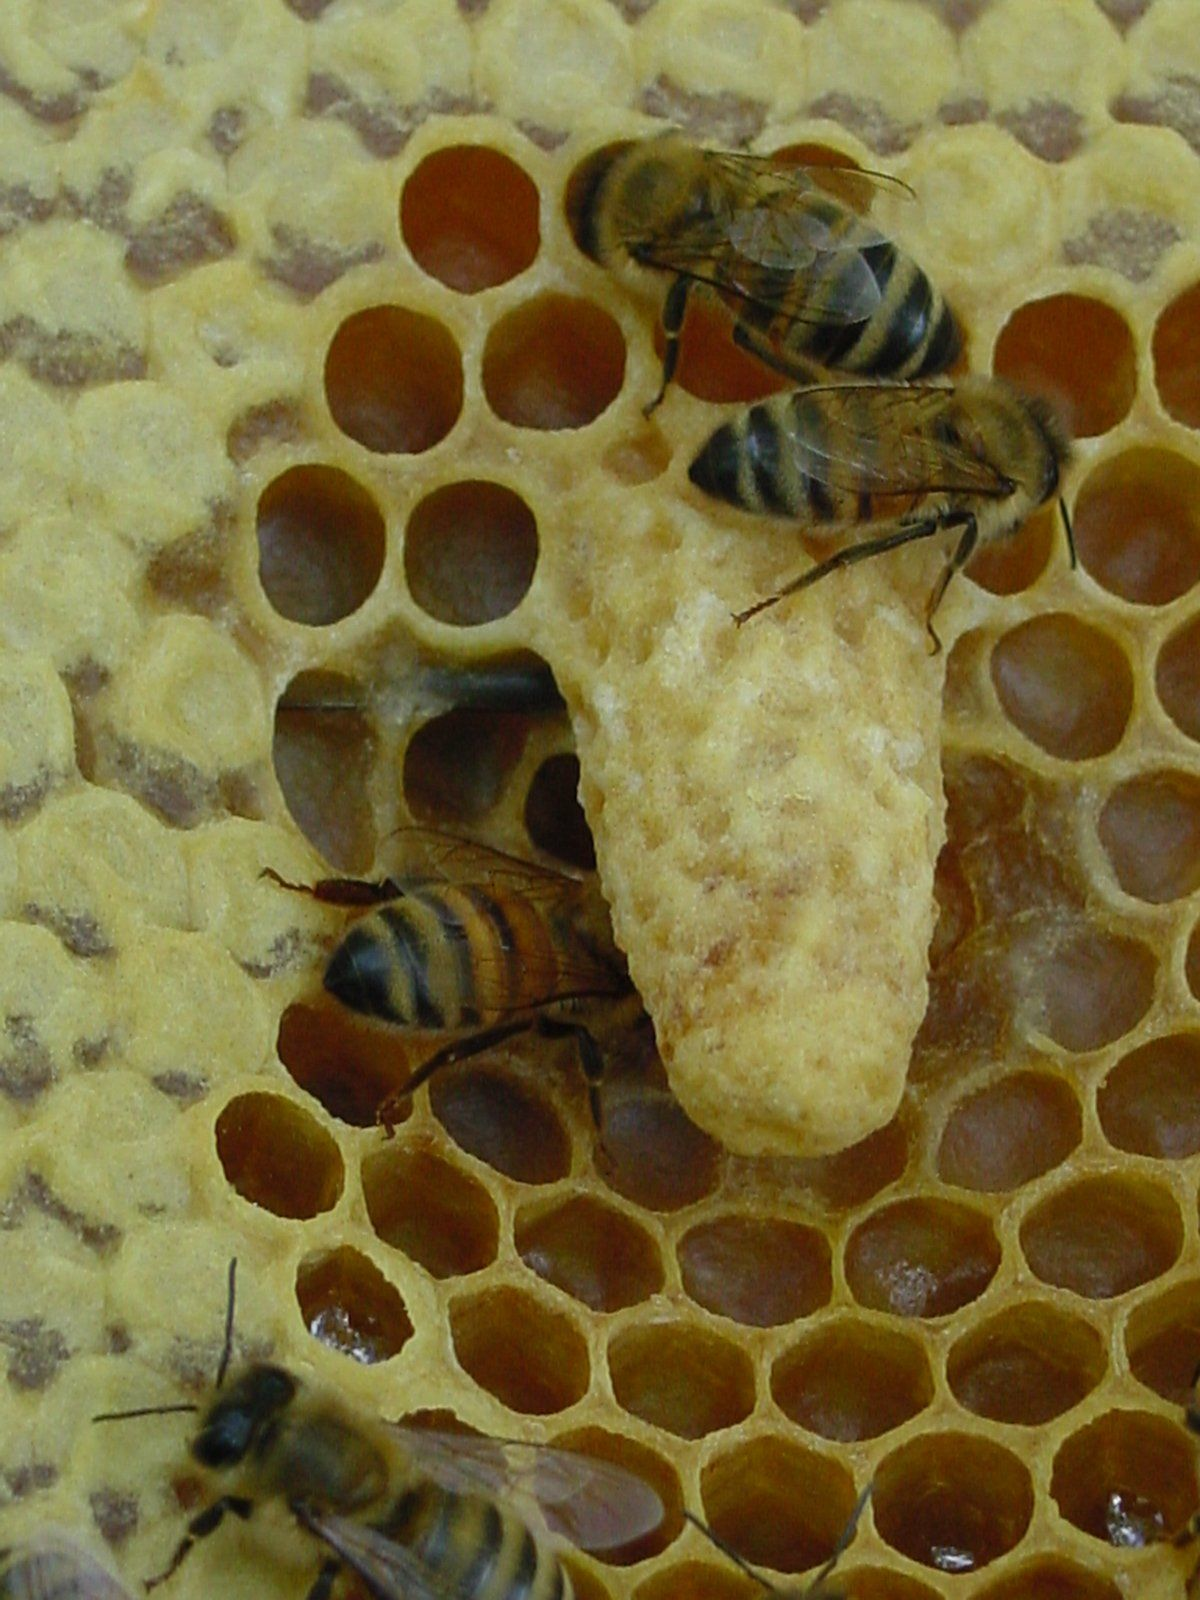 Queen cell: Several queens are laid in the queen cell. The ...